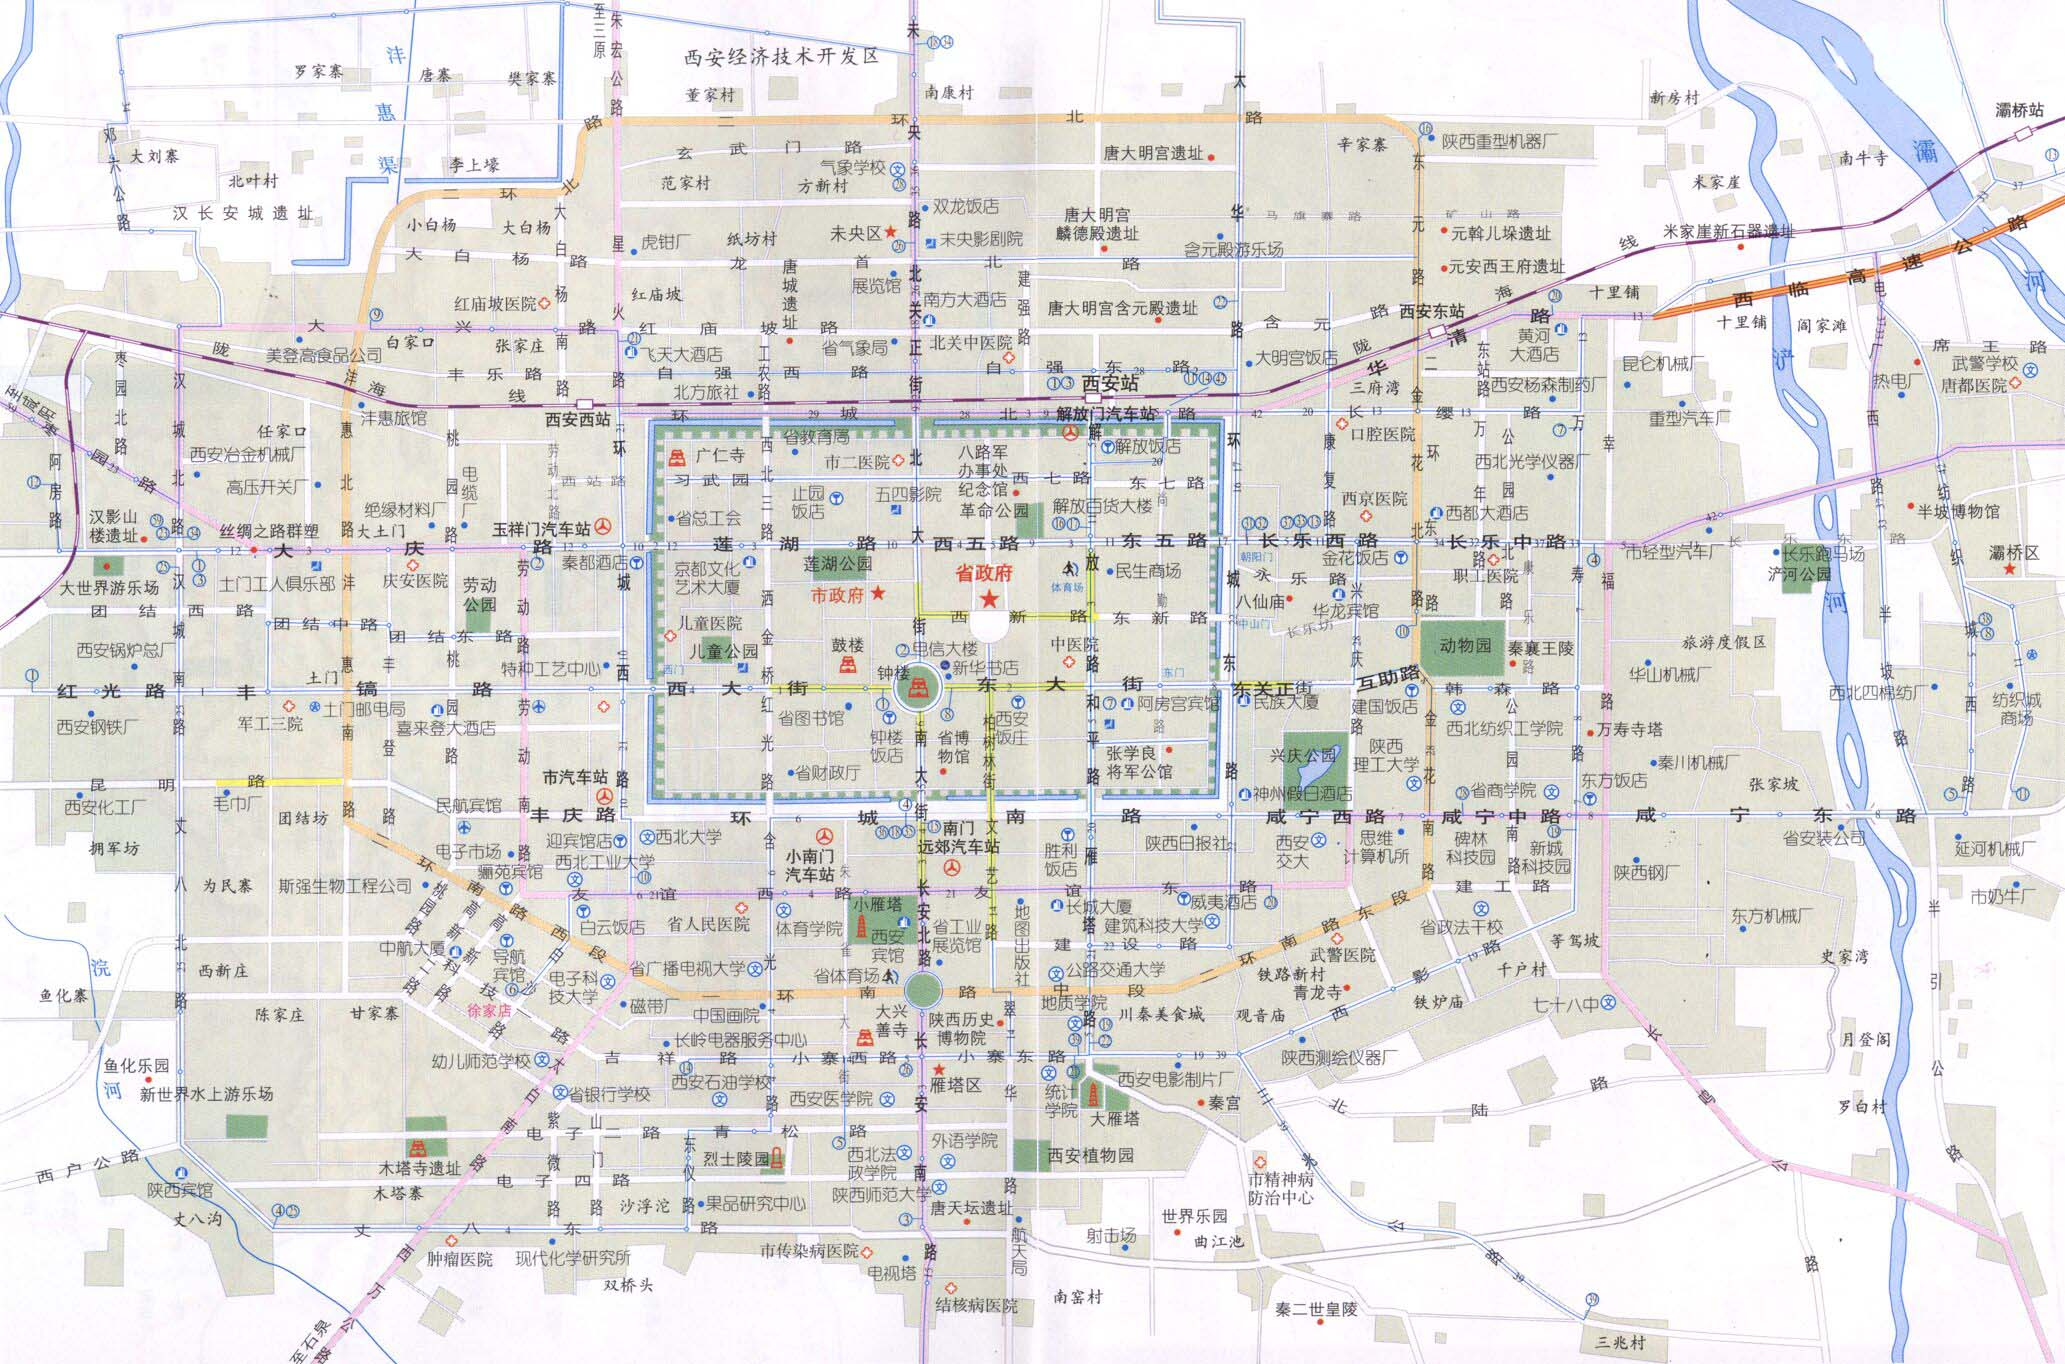 Xian Tourist Map Xian mappery – Xian Tourist Map